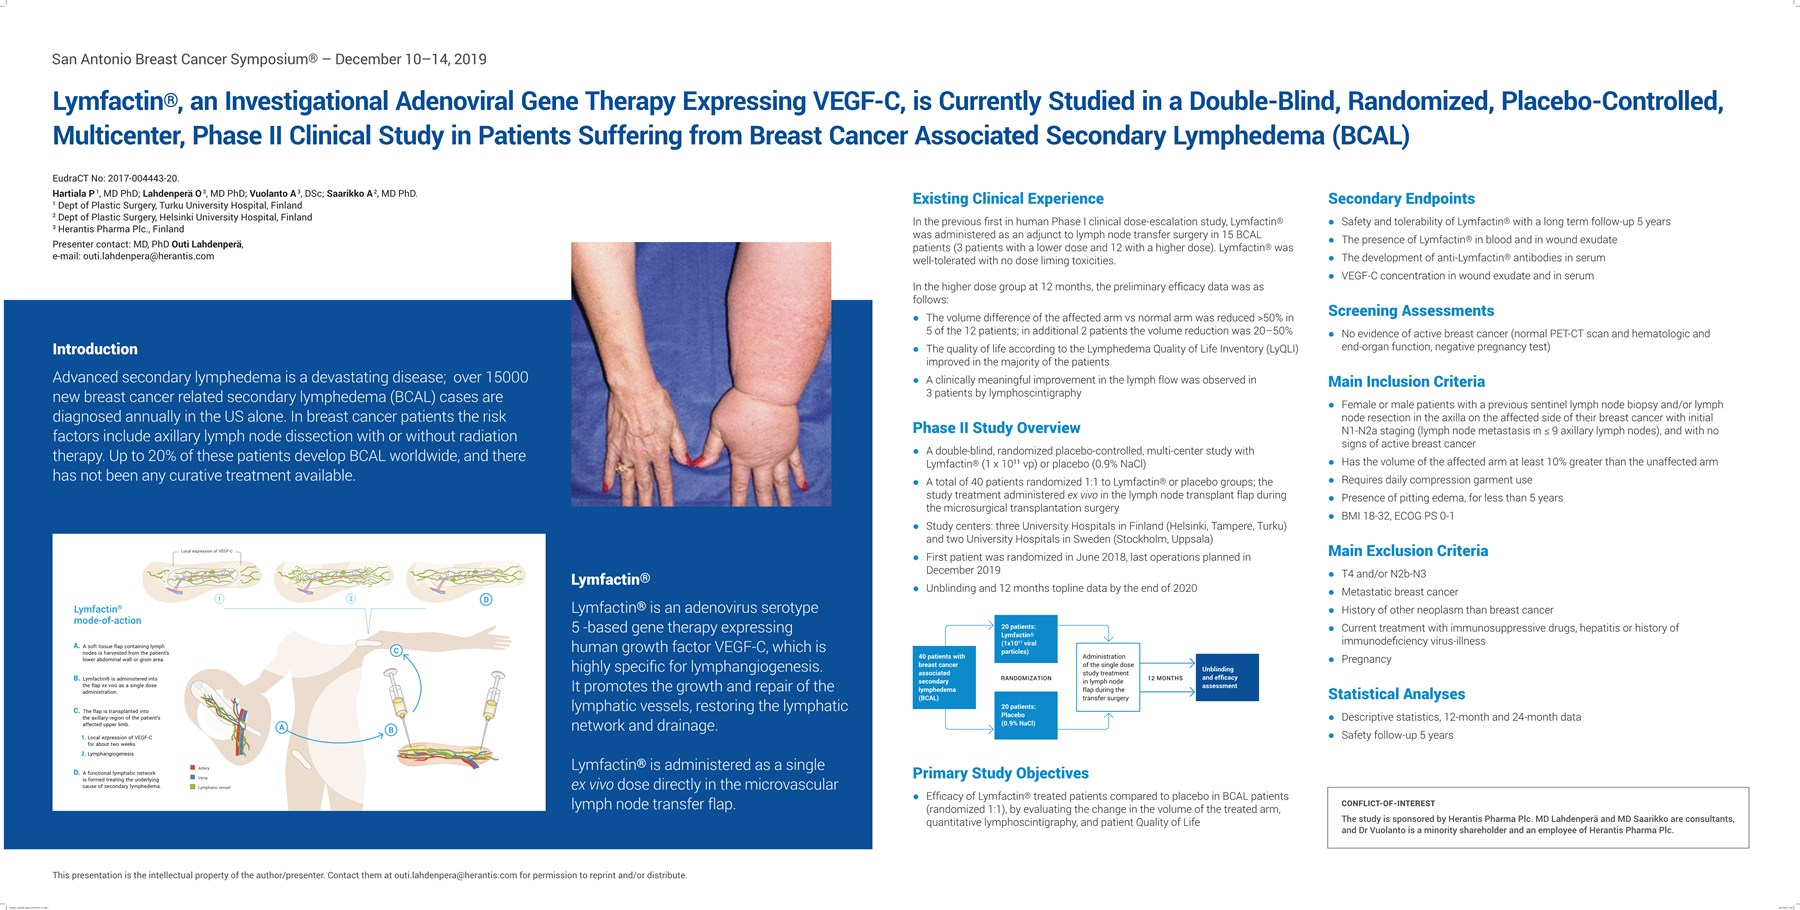 Lymfactin, an investigational adenoviral gene therapy expressing VEGF-C, is currently studied in a double-blind, randomized, placebo-controlled, multicenter, phase 2 clinical study in patients suffering from breast cancer associated secondary lymphedema (BCAL)